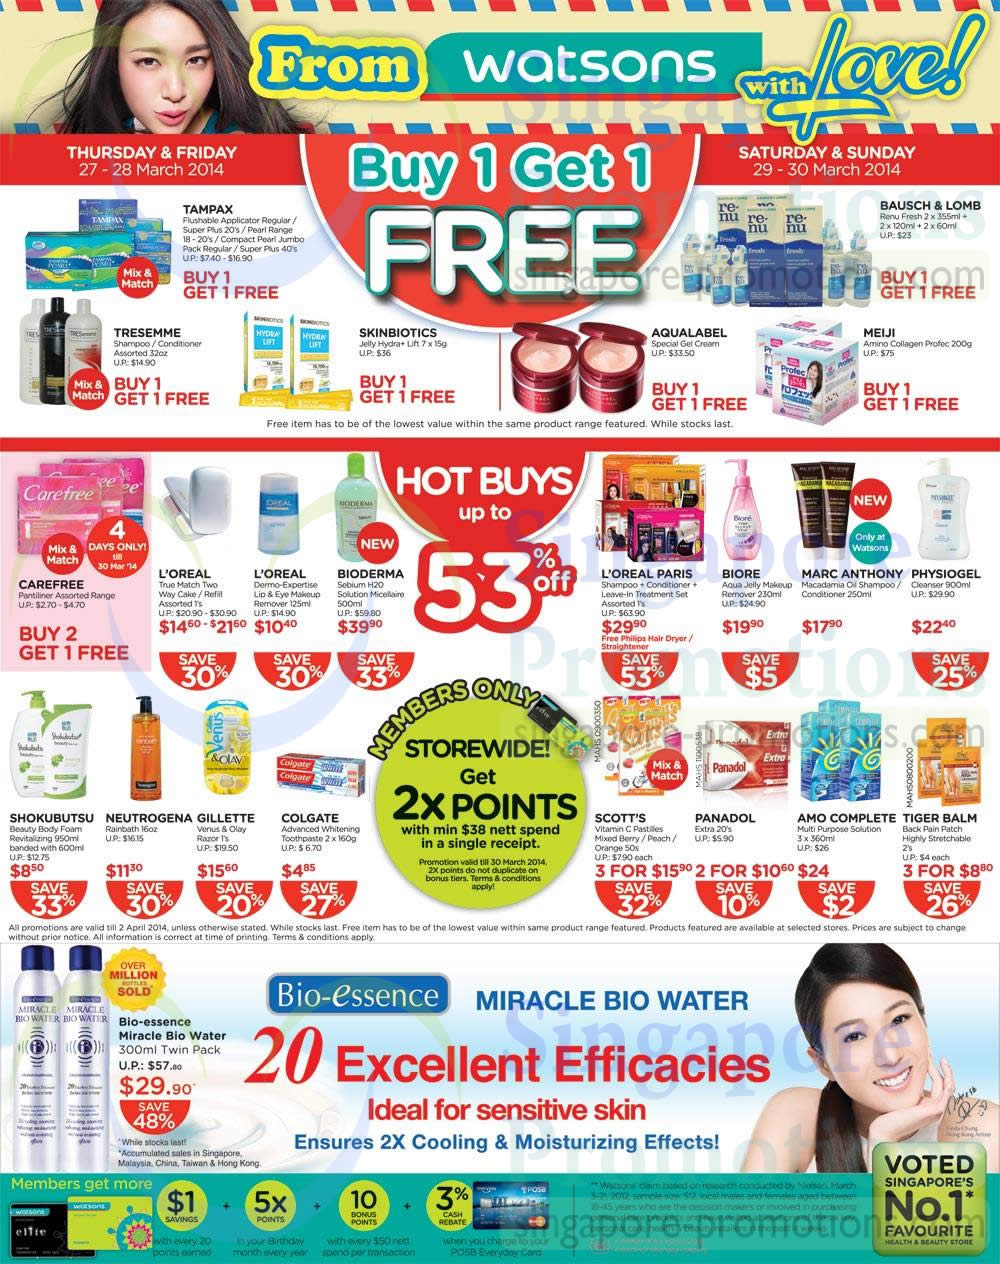 Buy 1 Get 1 Free Offers, Hot Buys up to 53 Percent Off